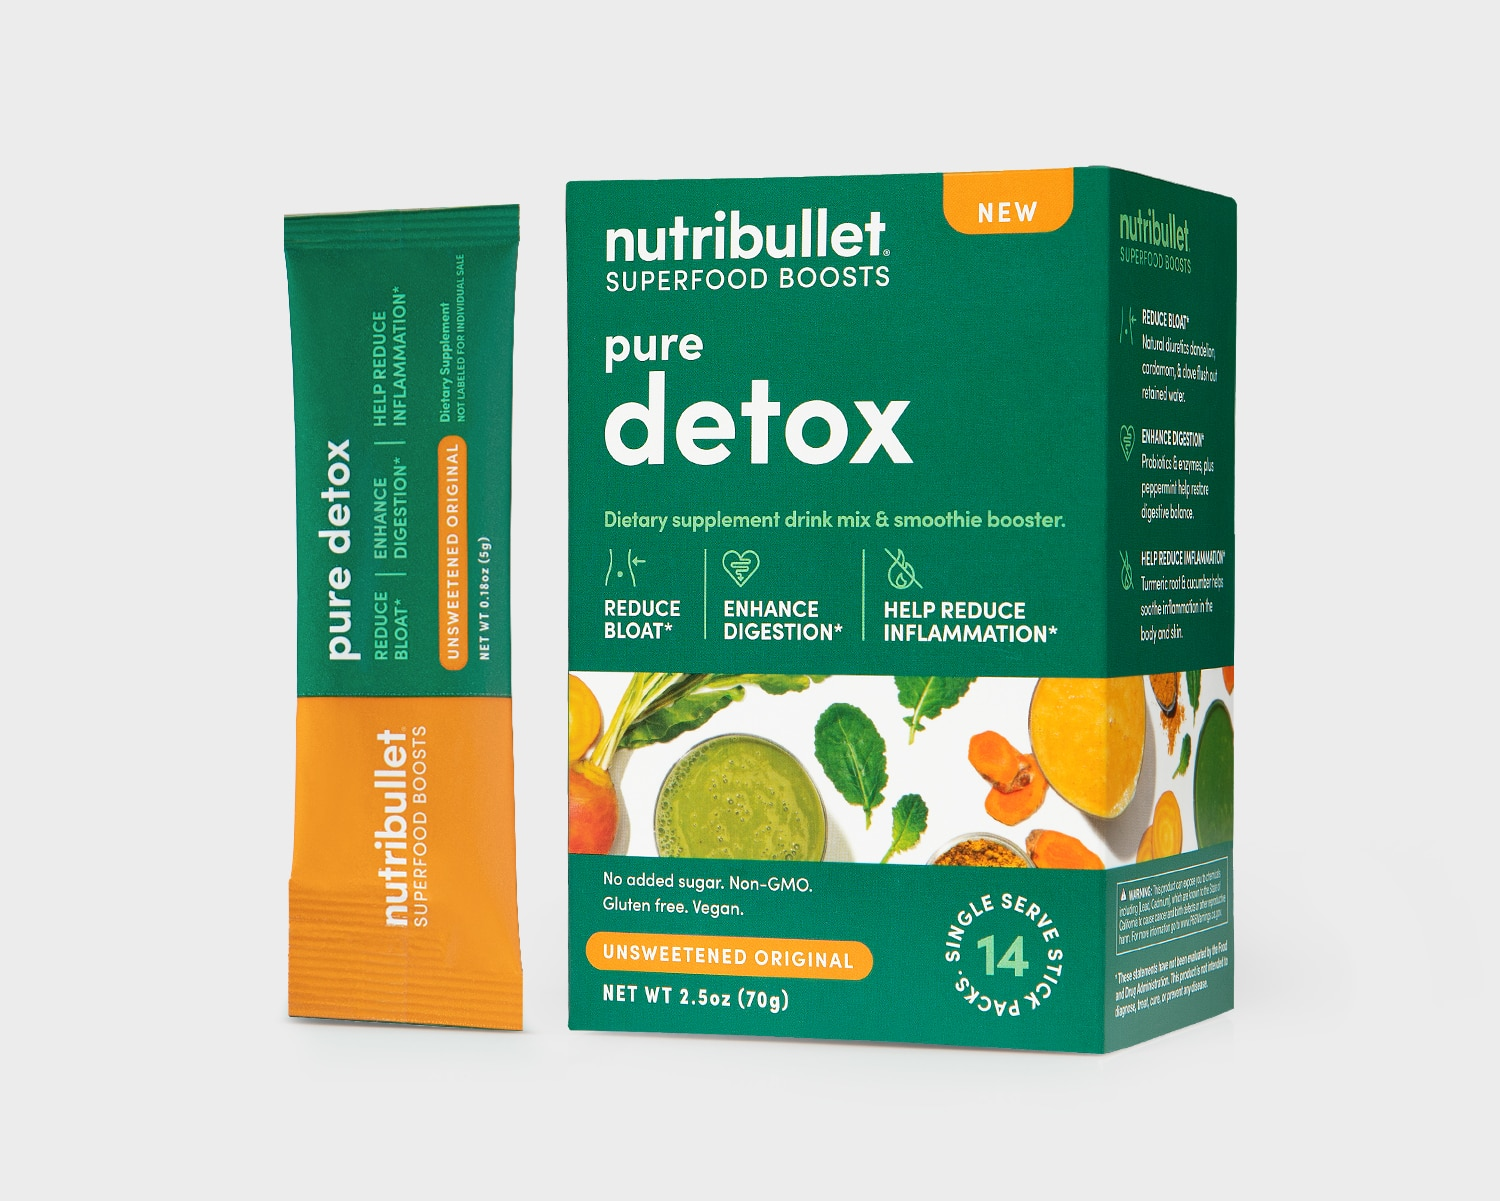 NutriBullet Pure Detox green box with smoothies, fruits and green vegetables label and a packet of '14 stick packs'